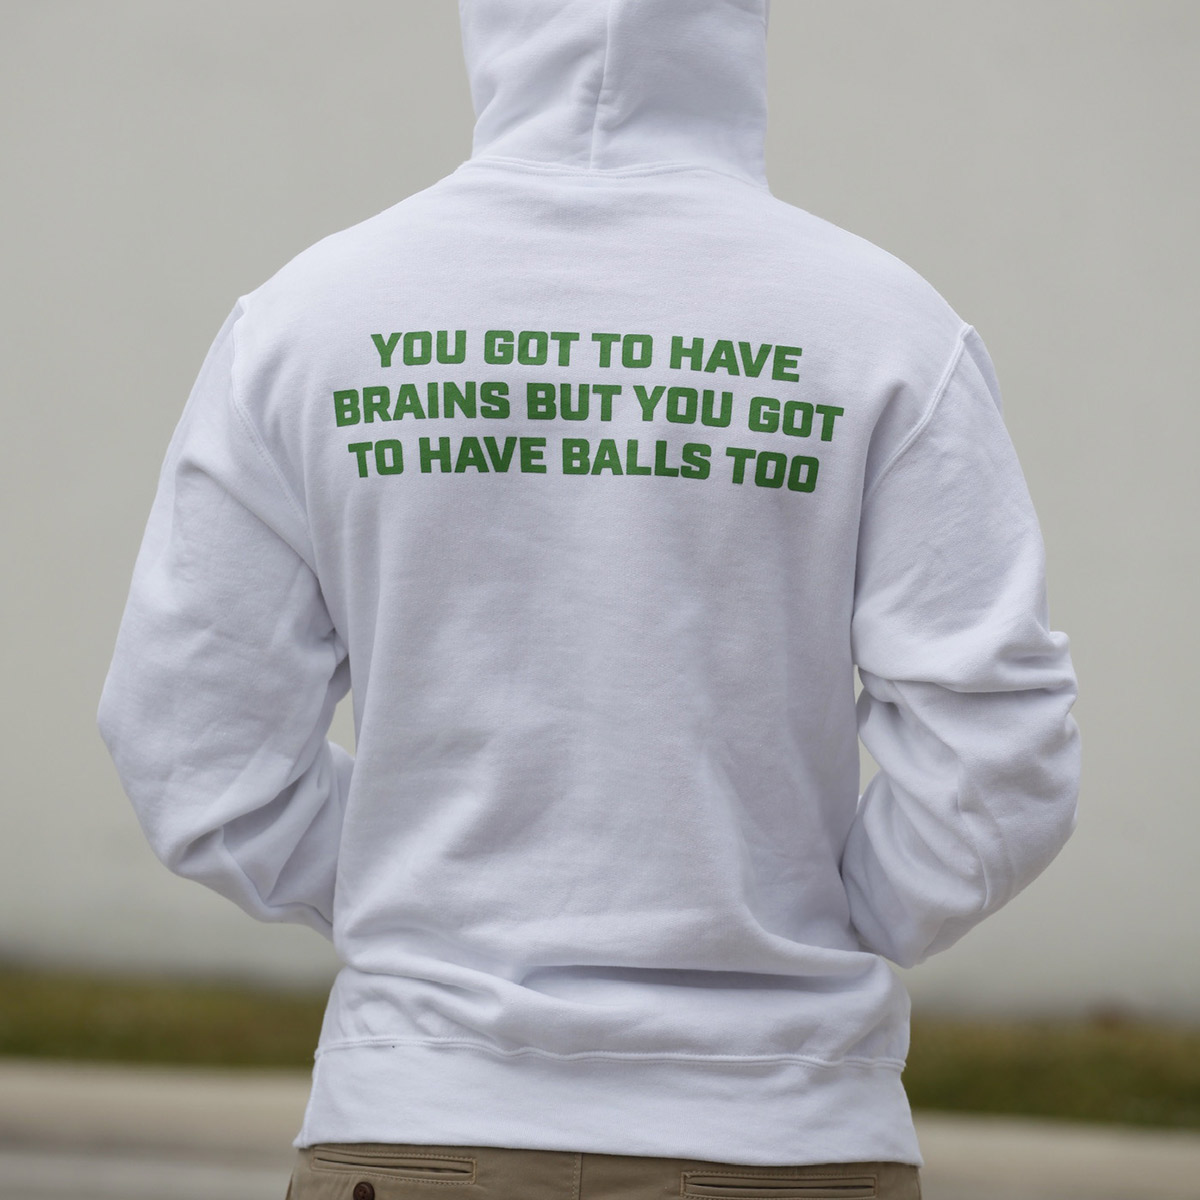 You got to have brains but you got to have balls too - white hooded sweatshirt